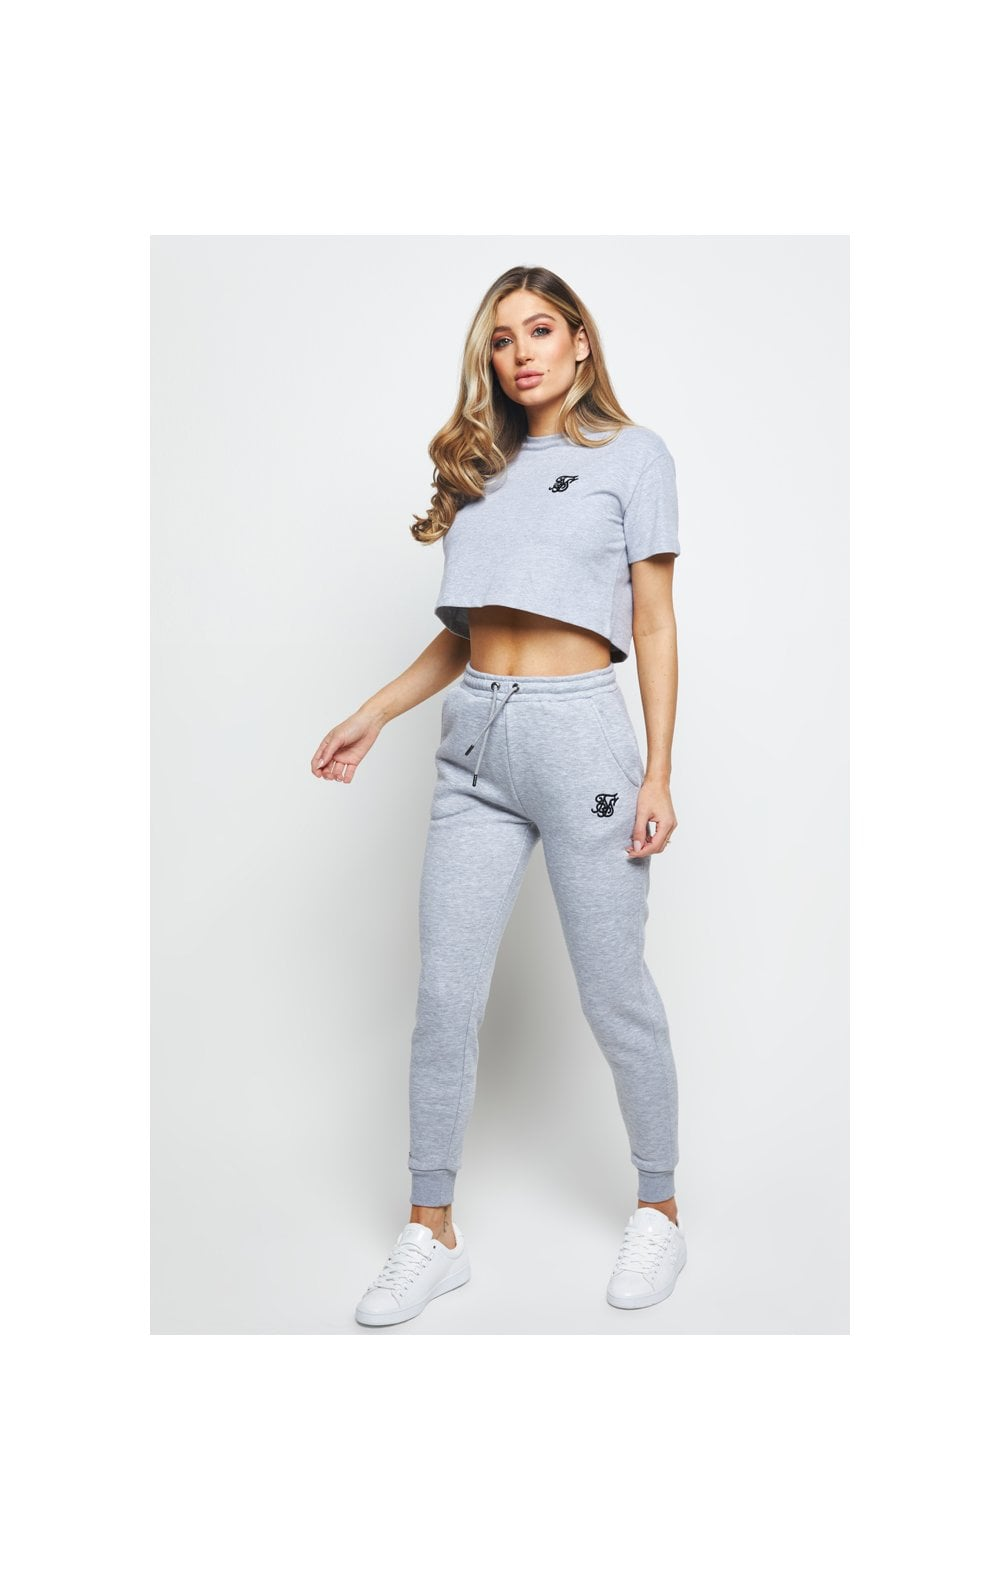 SikSilk Retro Box Fit Crop Tee – Grey Marl (3)